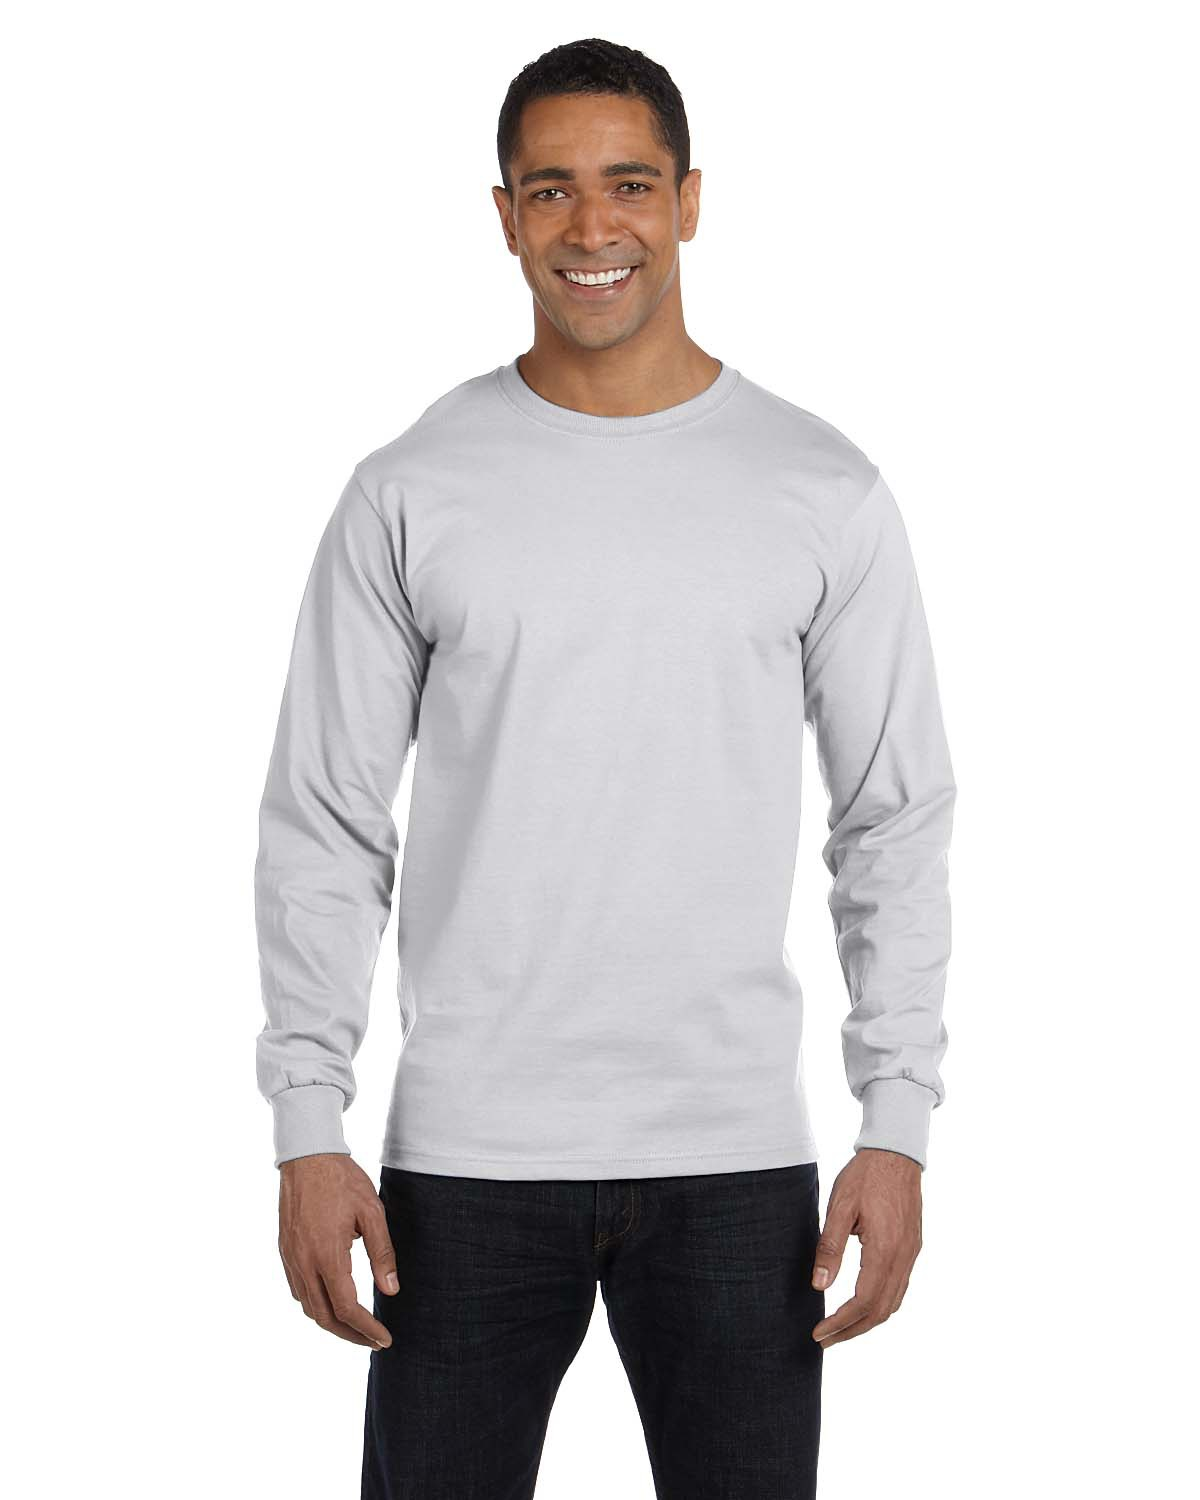 Gildan G8400 - Adult Gildan DryBlend Long-Sleeve T-Shirt